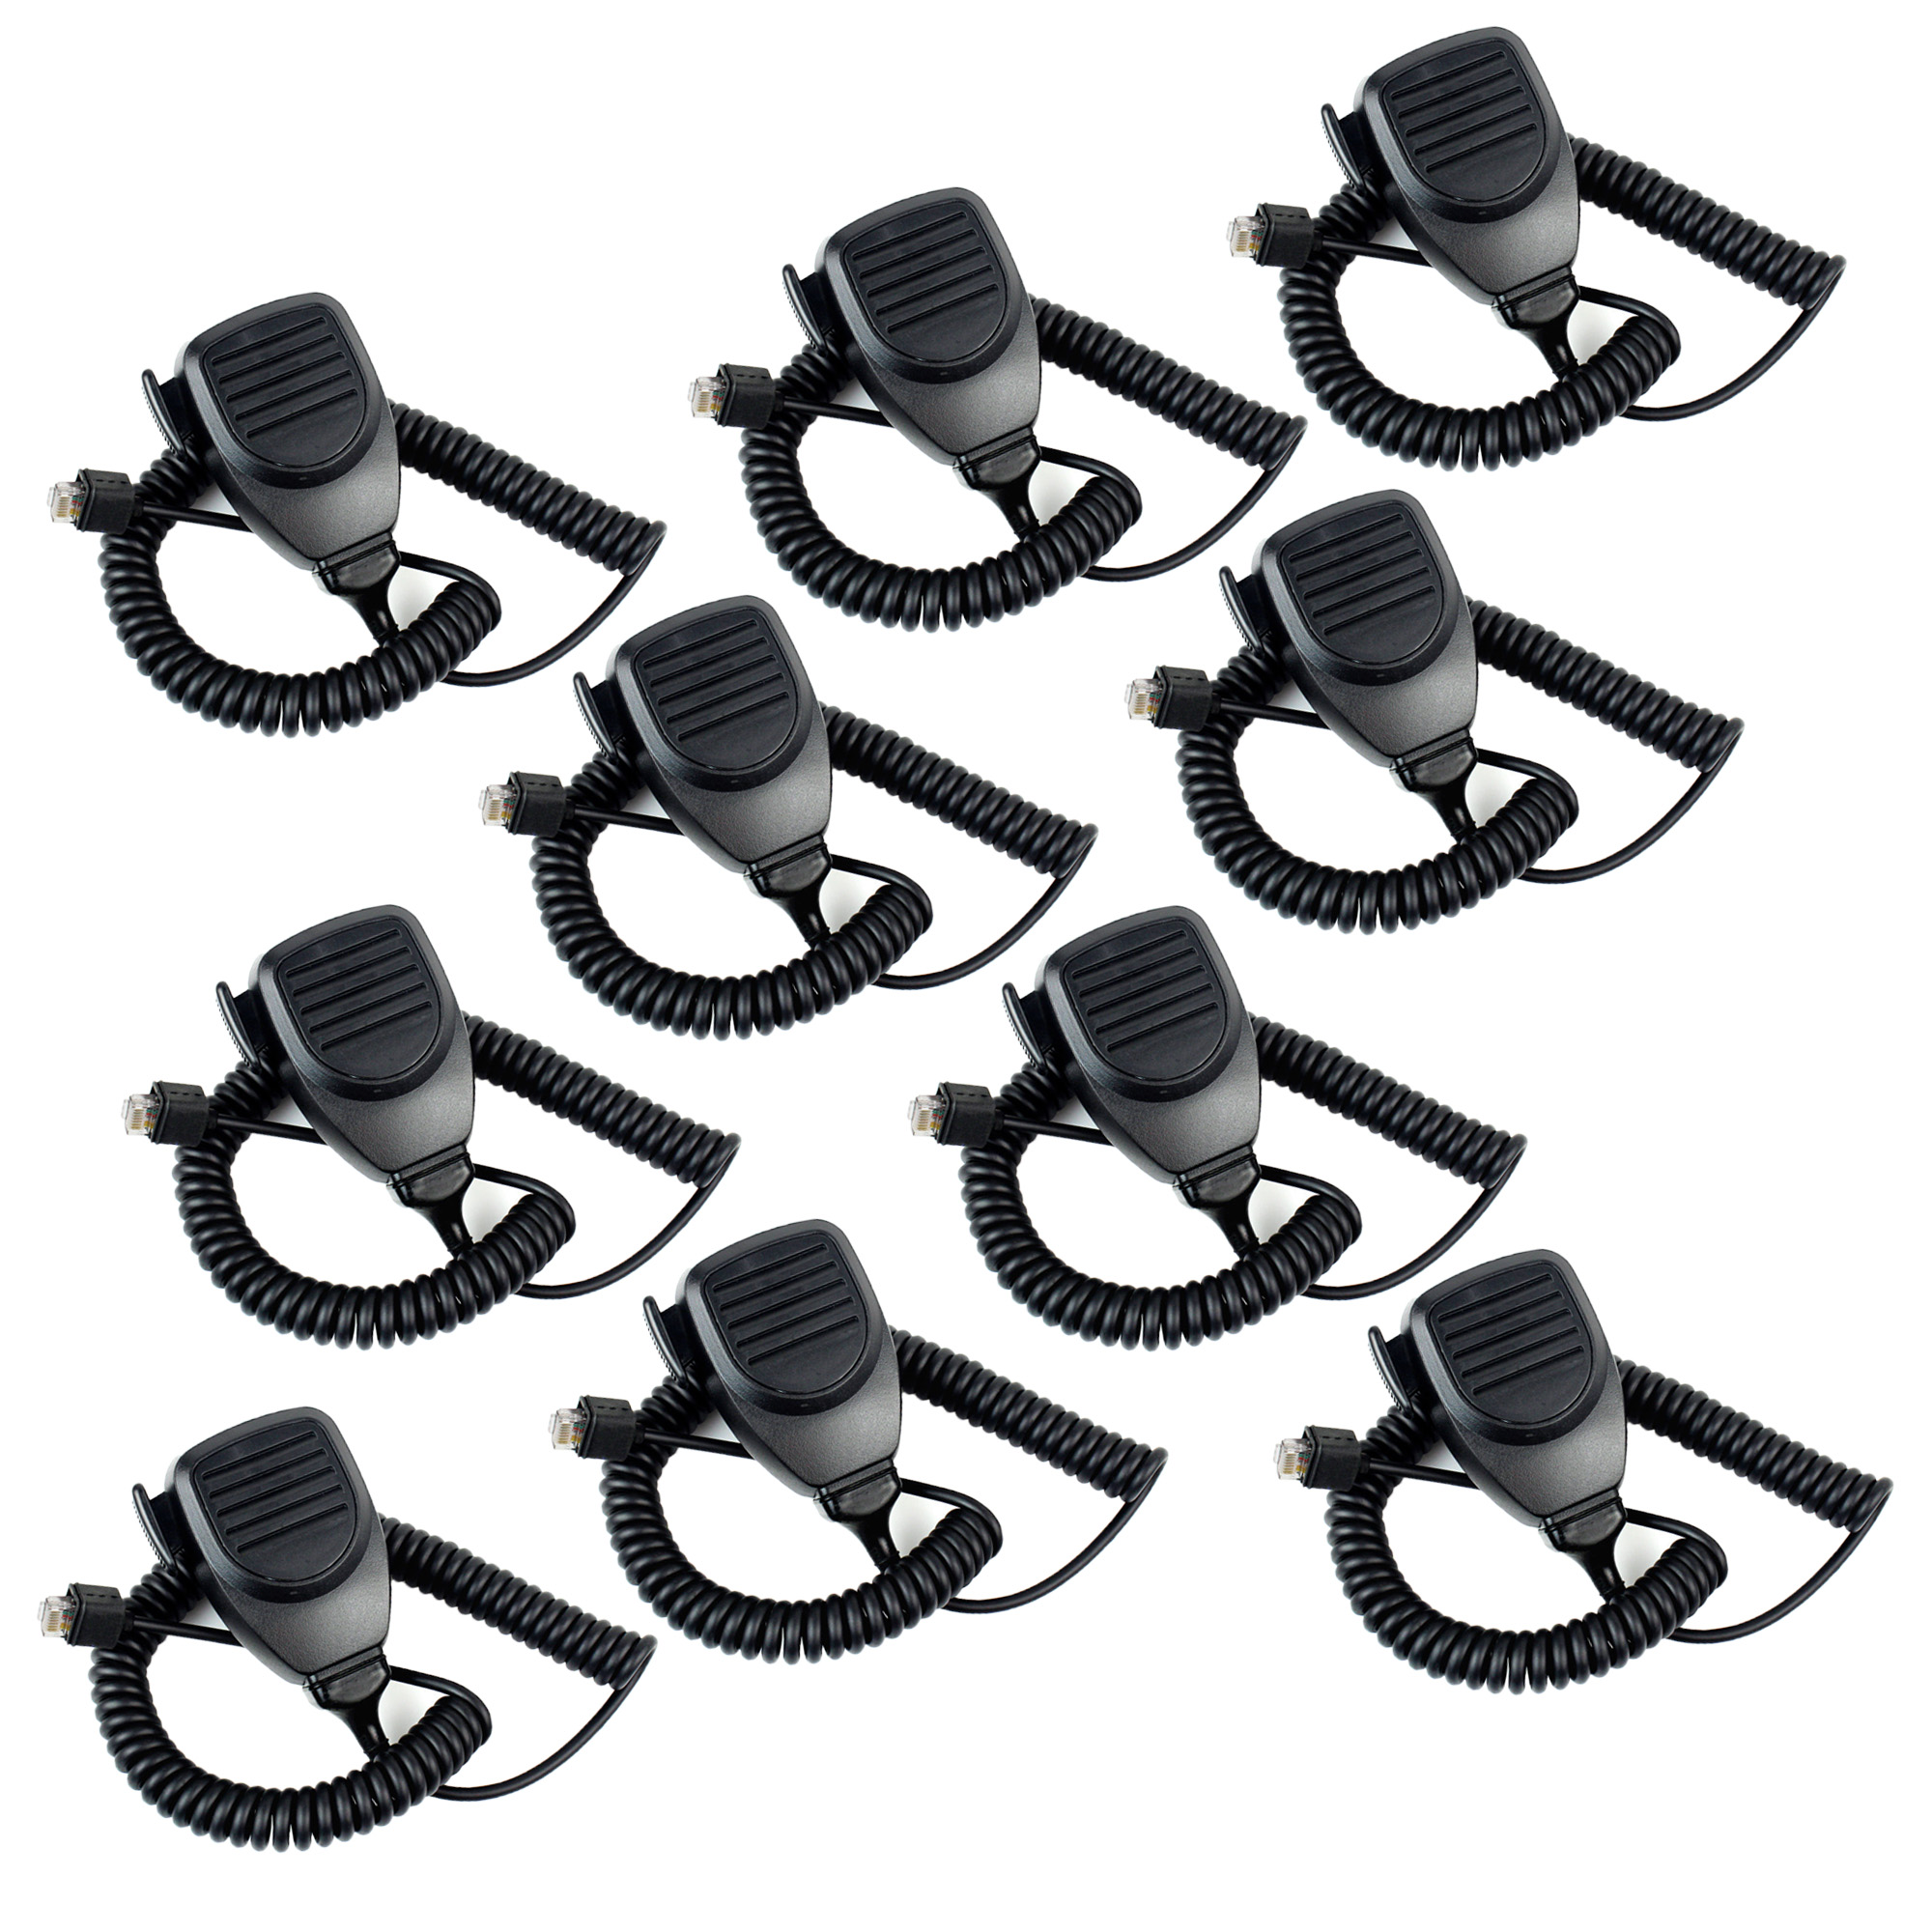 10pcs MT-KMC30 8Pin Microphone For Kenwood TK-730 TK-760 TK-768 TK-830 Mobile Radio J6208A